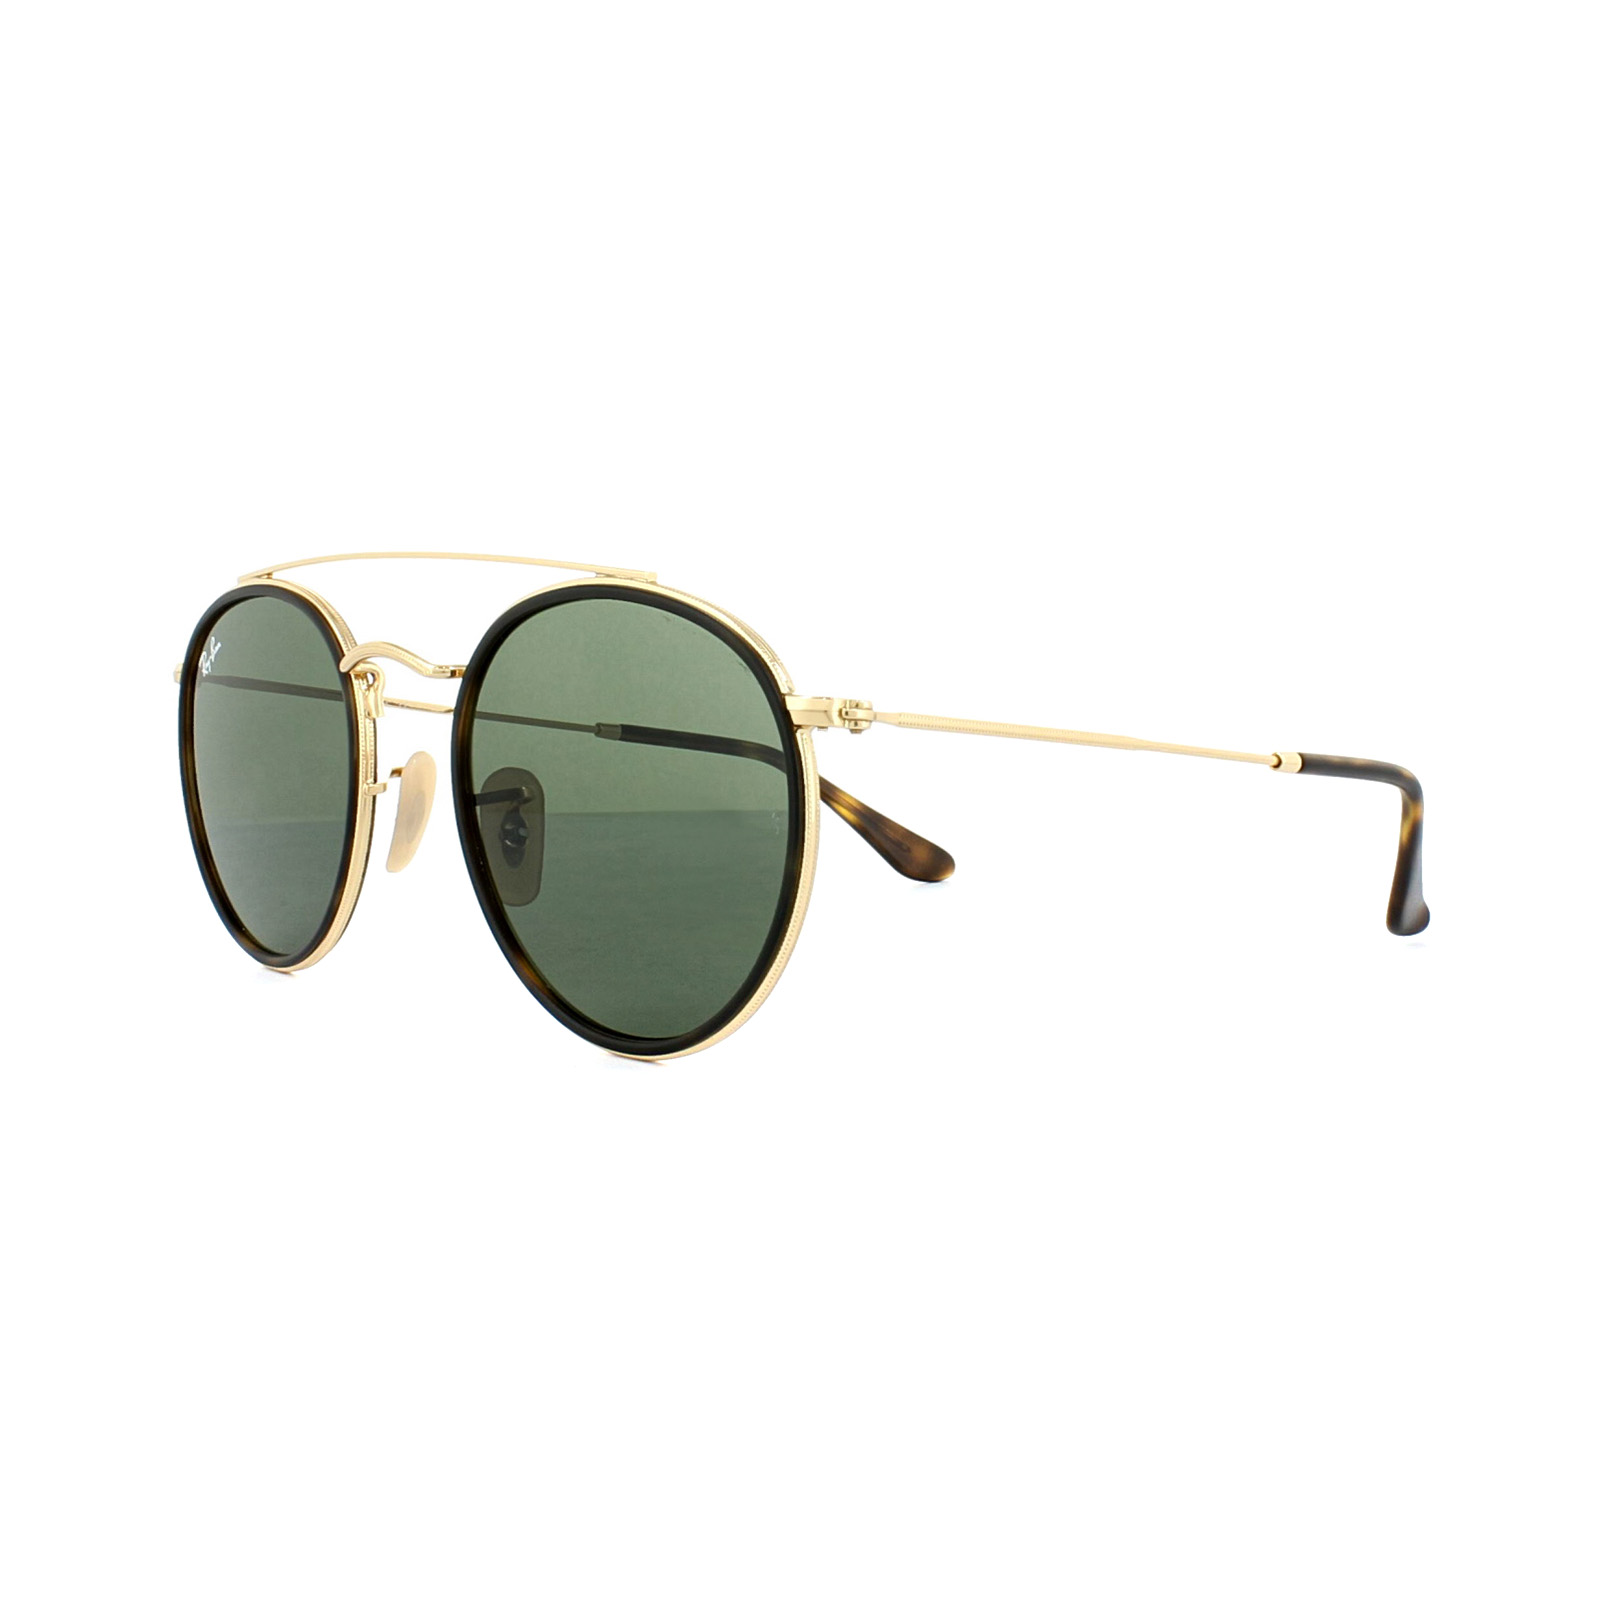 cheap ray ban round double bridge 3647n sunglasses discounted sunglasses. Black Bedroom Furniture Sets. Home Design Ideas